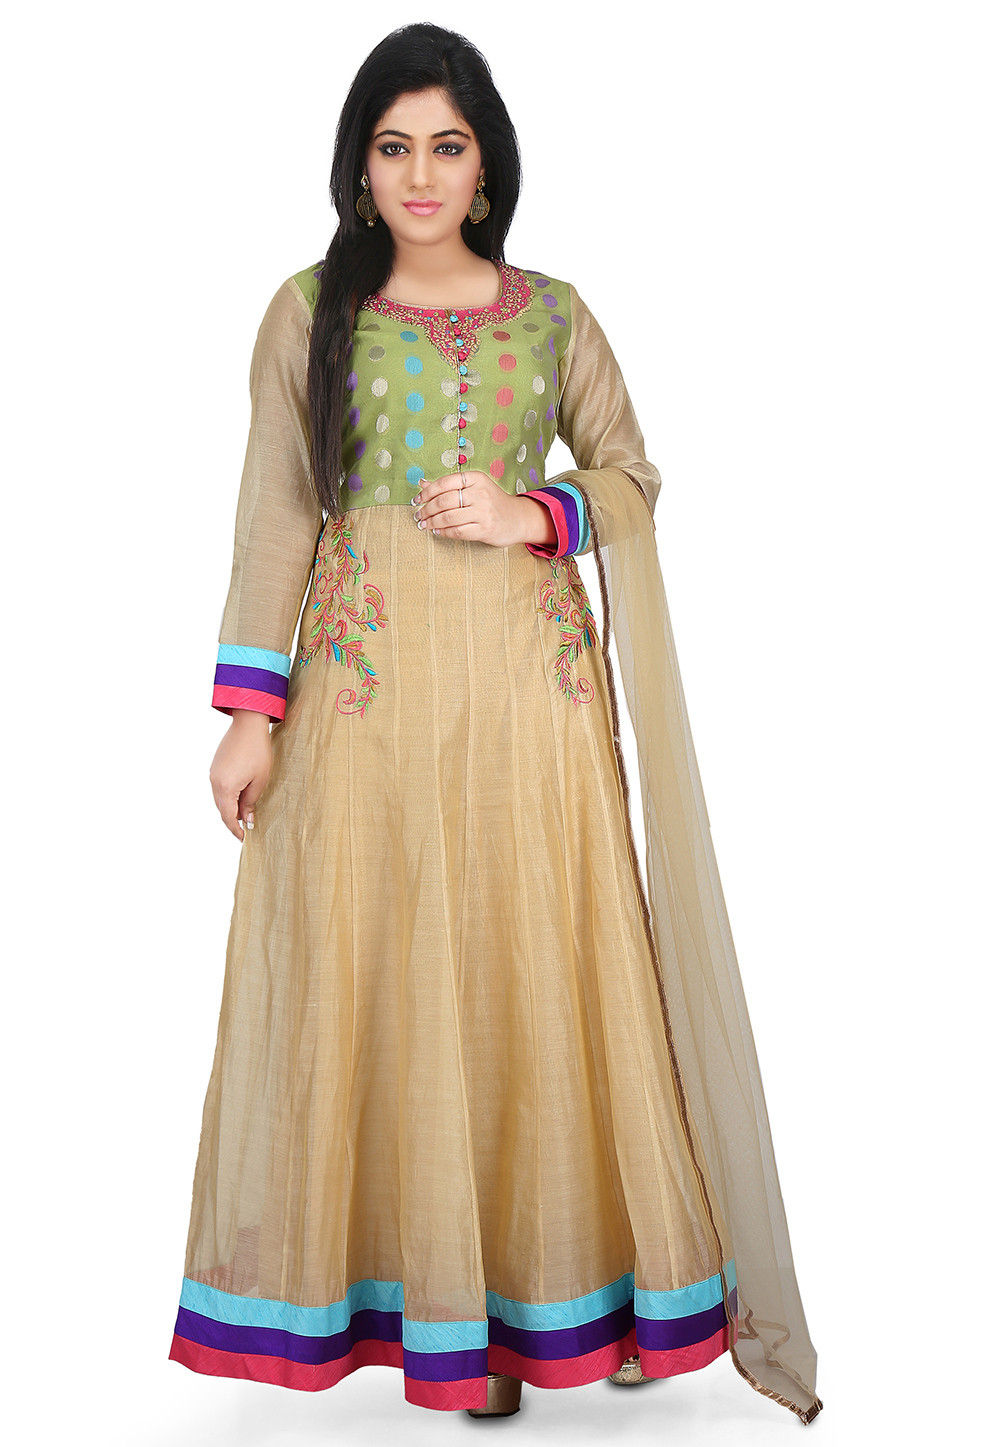 Embroidered Chanderi Cotton Abaya Style Suit in Beige and Olive Green